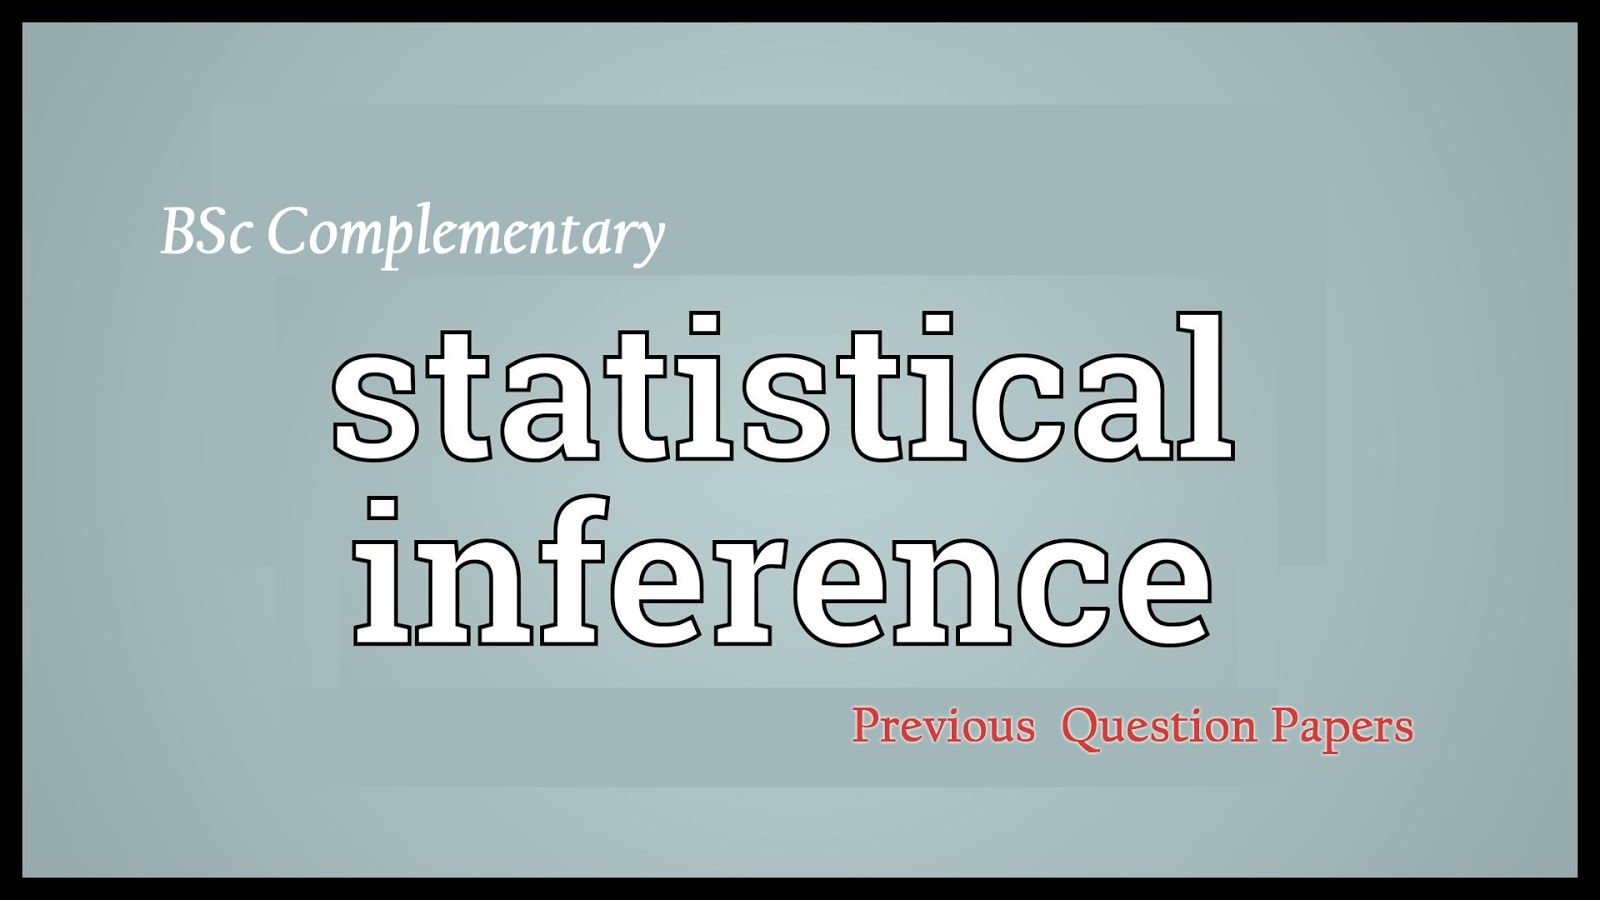 BSc Complementary Statistical Inference Previous Question Papers